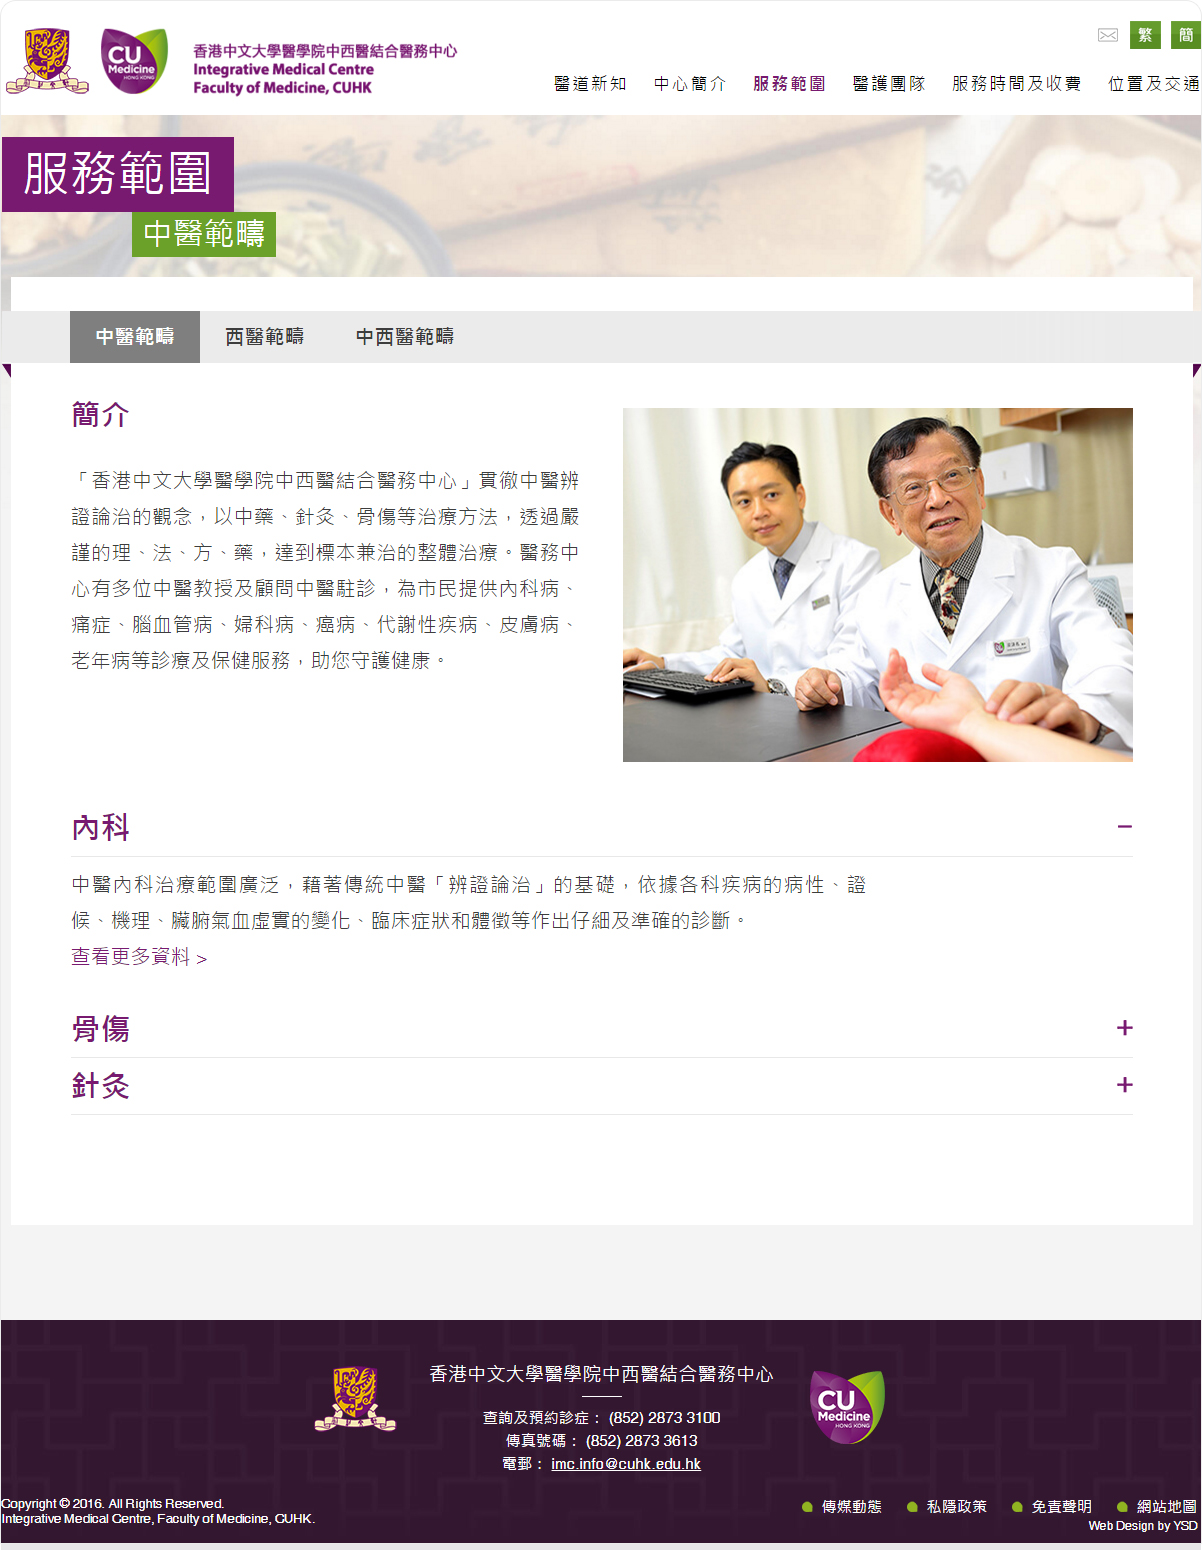 Integrative Medical Centre, Faculty of Medicine, CUHK